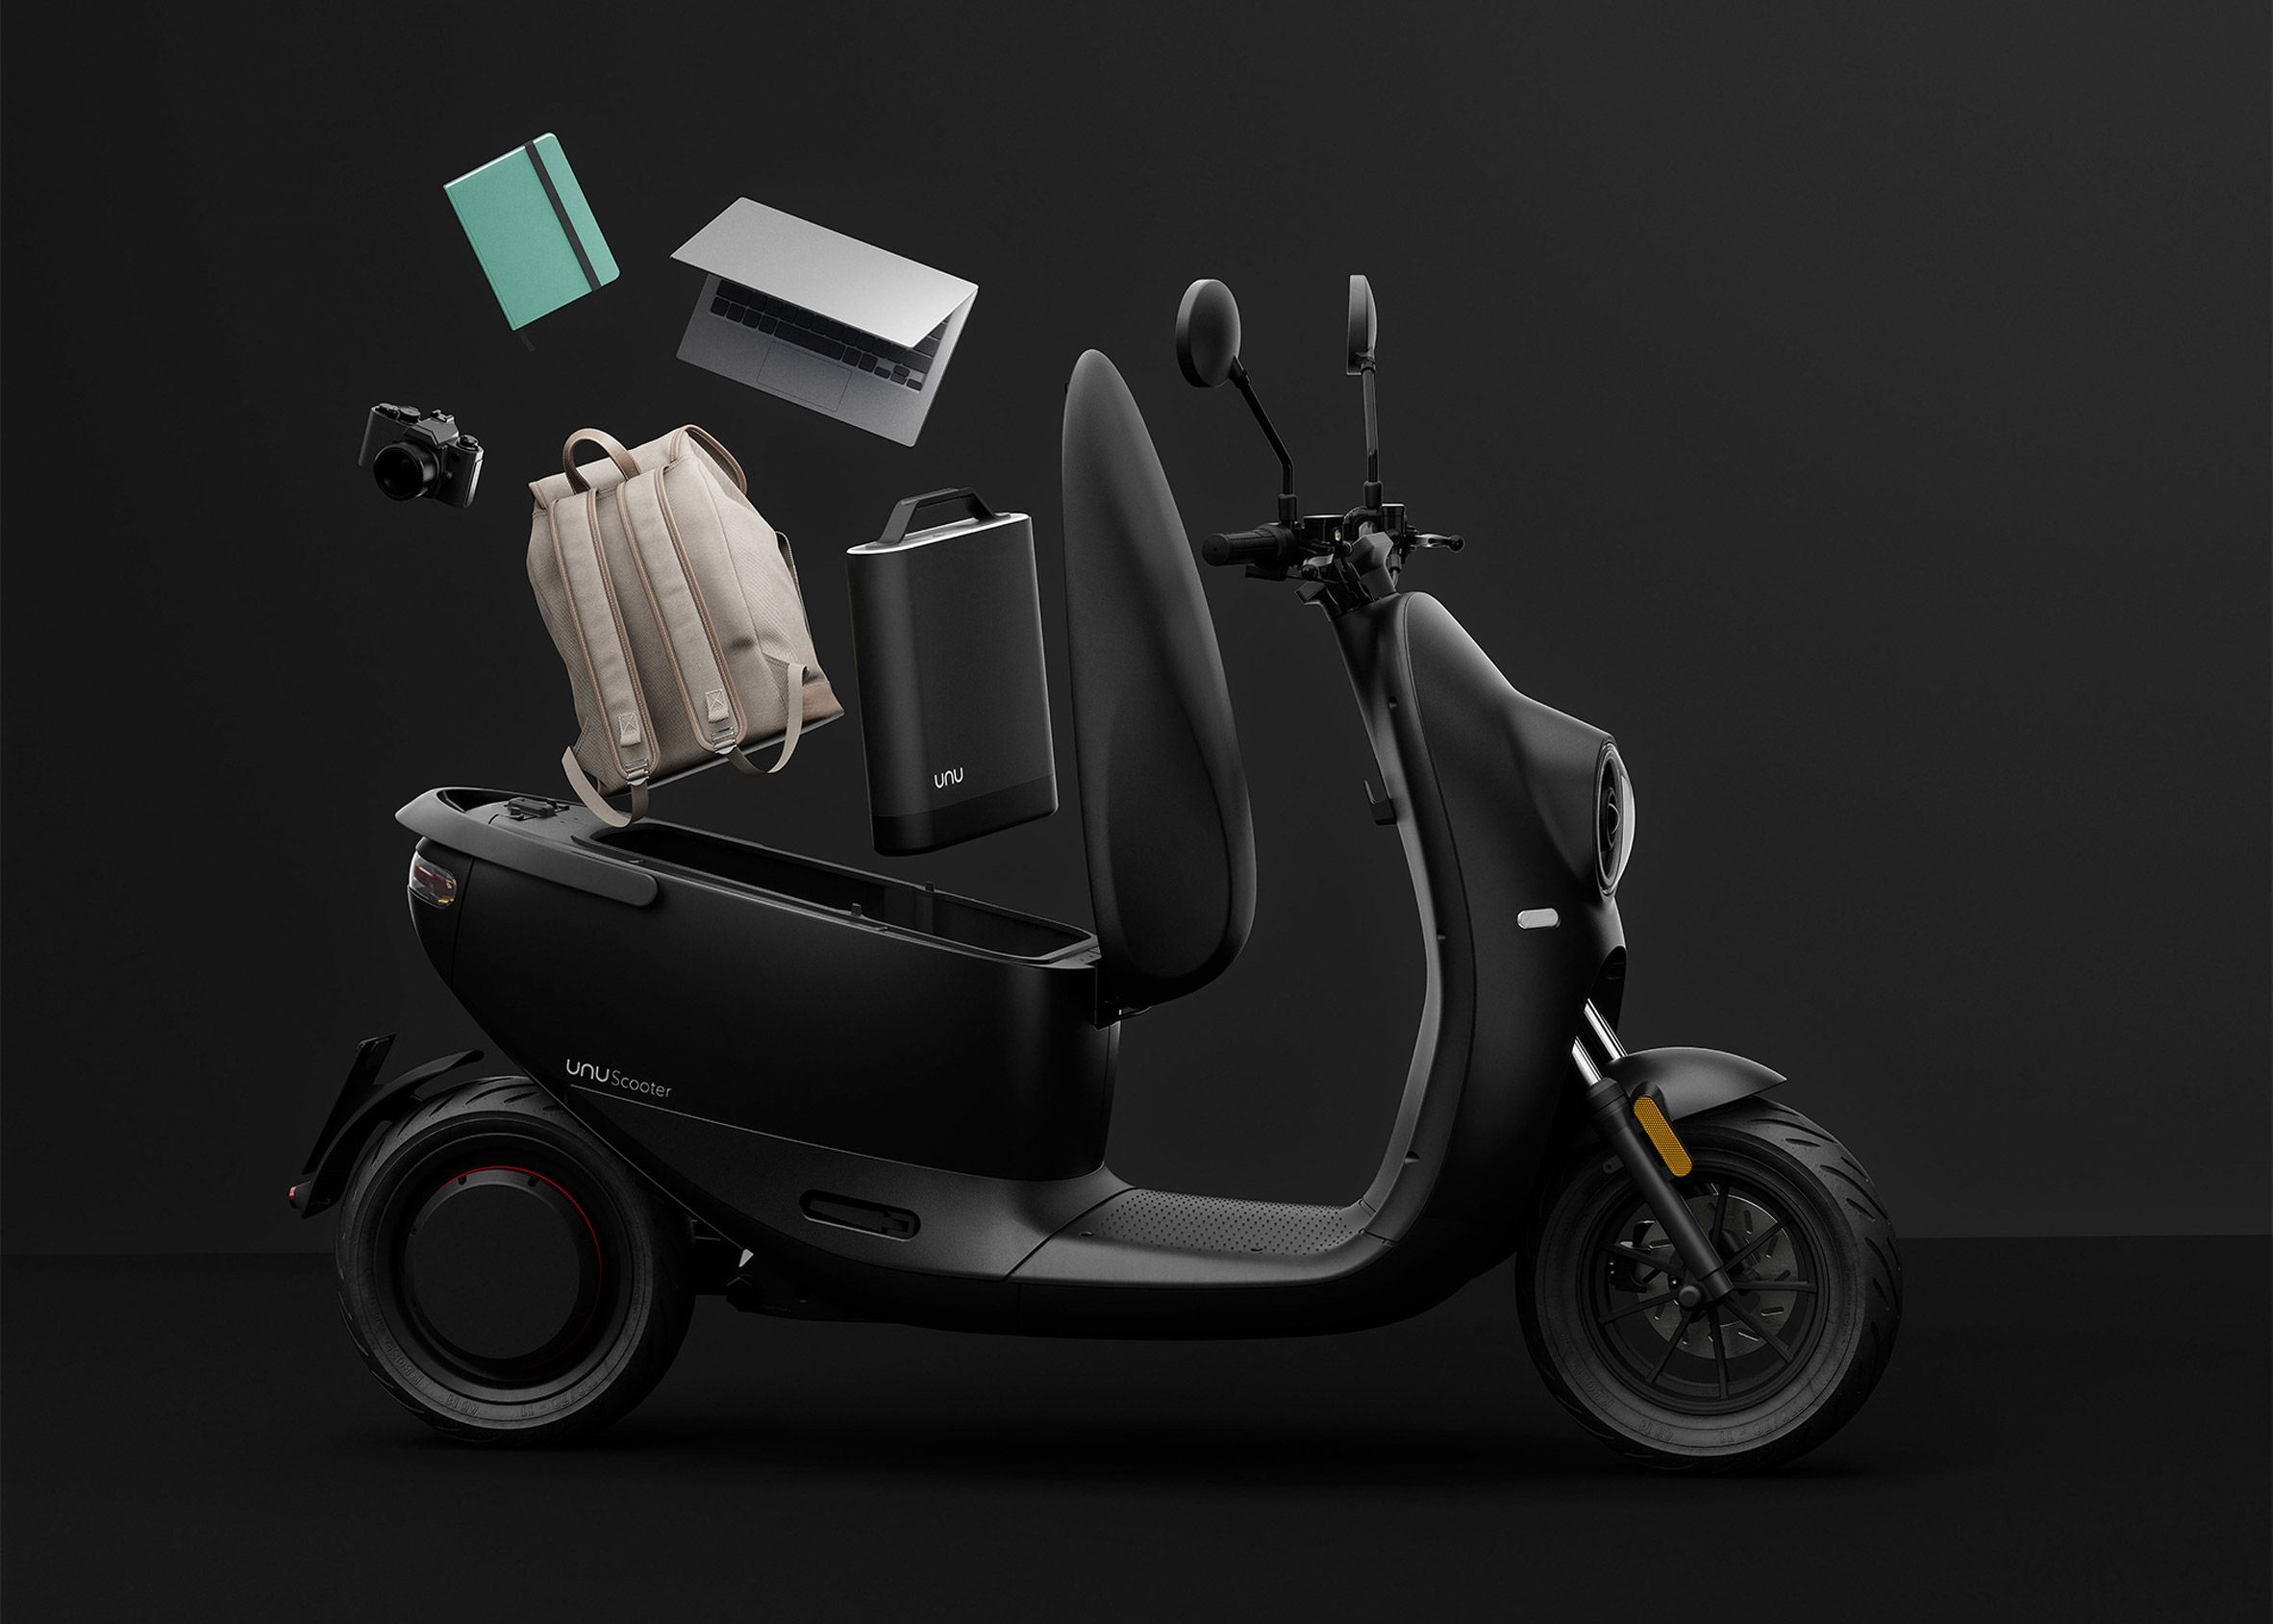 Unu's networked scooter uses smart technologies to allow